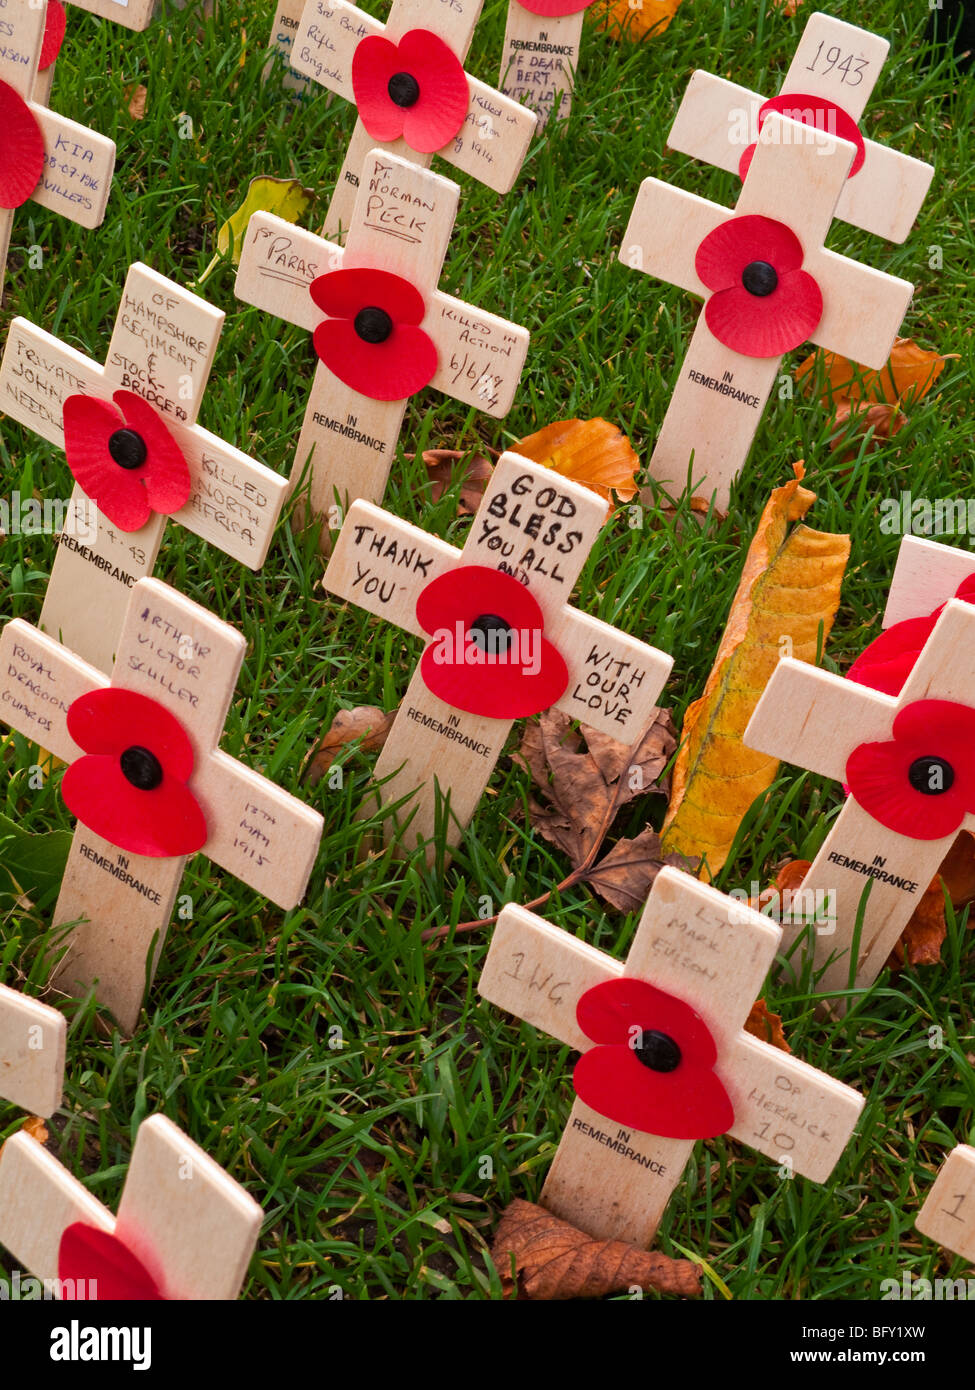 Detail of wooden crosses and poppies with names of fallen service personnel on Remembrance Sunday in November in - Stock Image